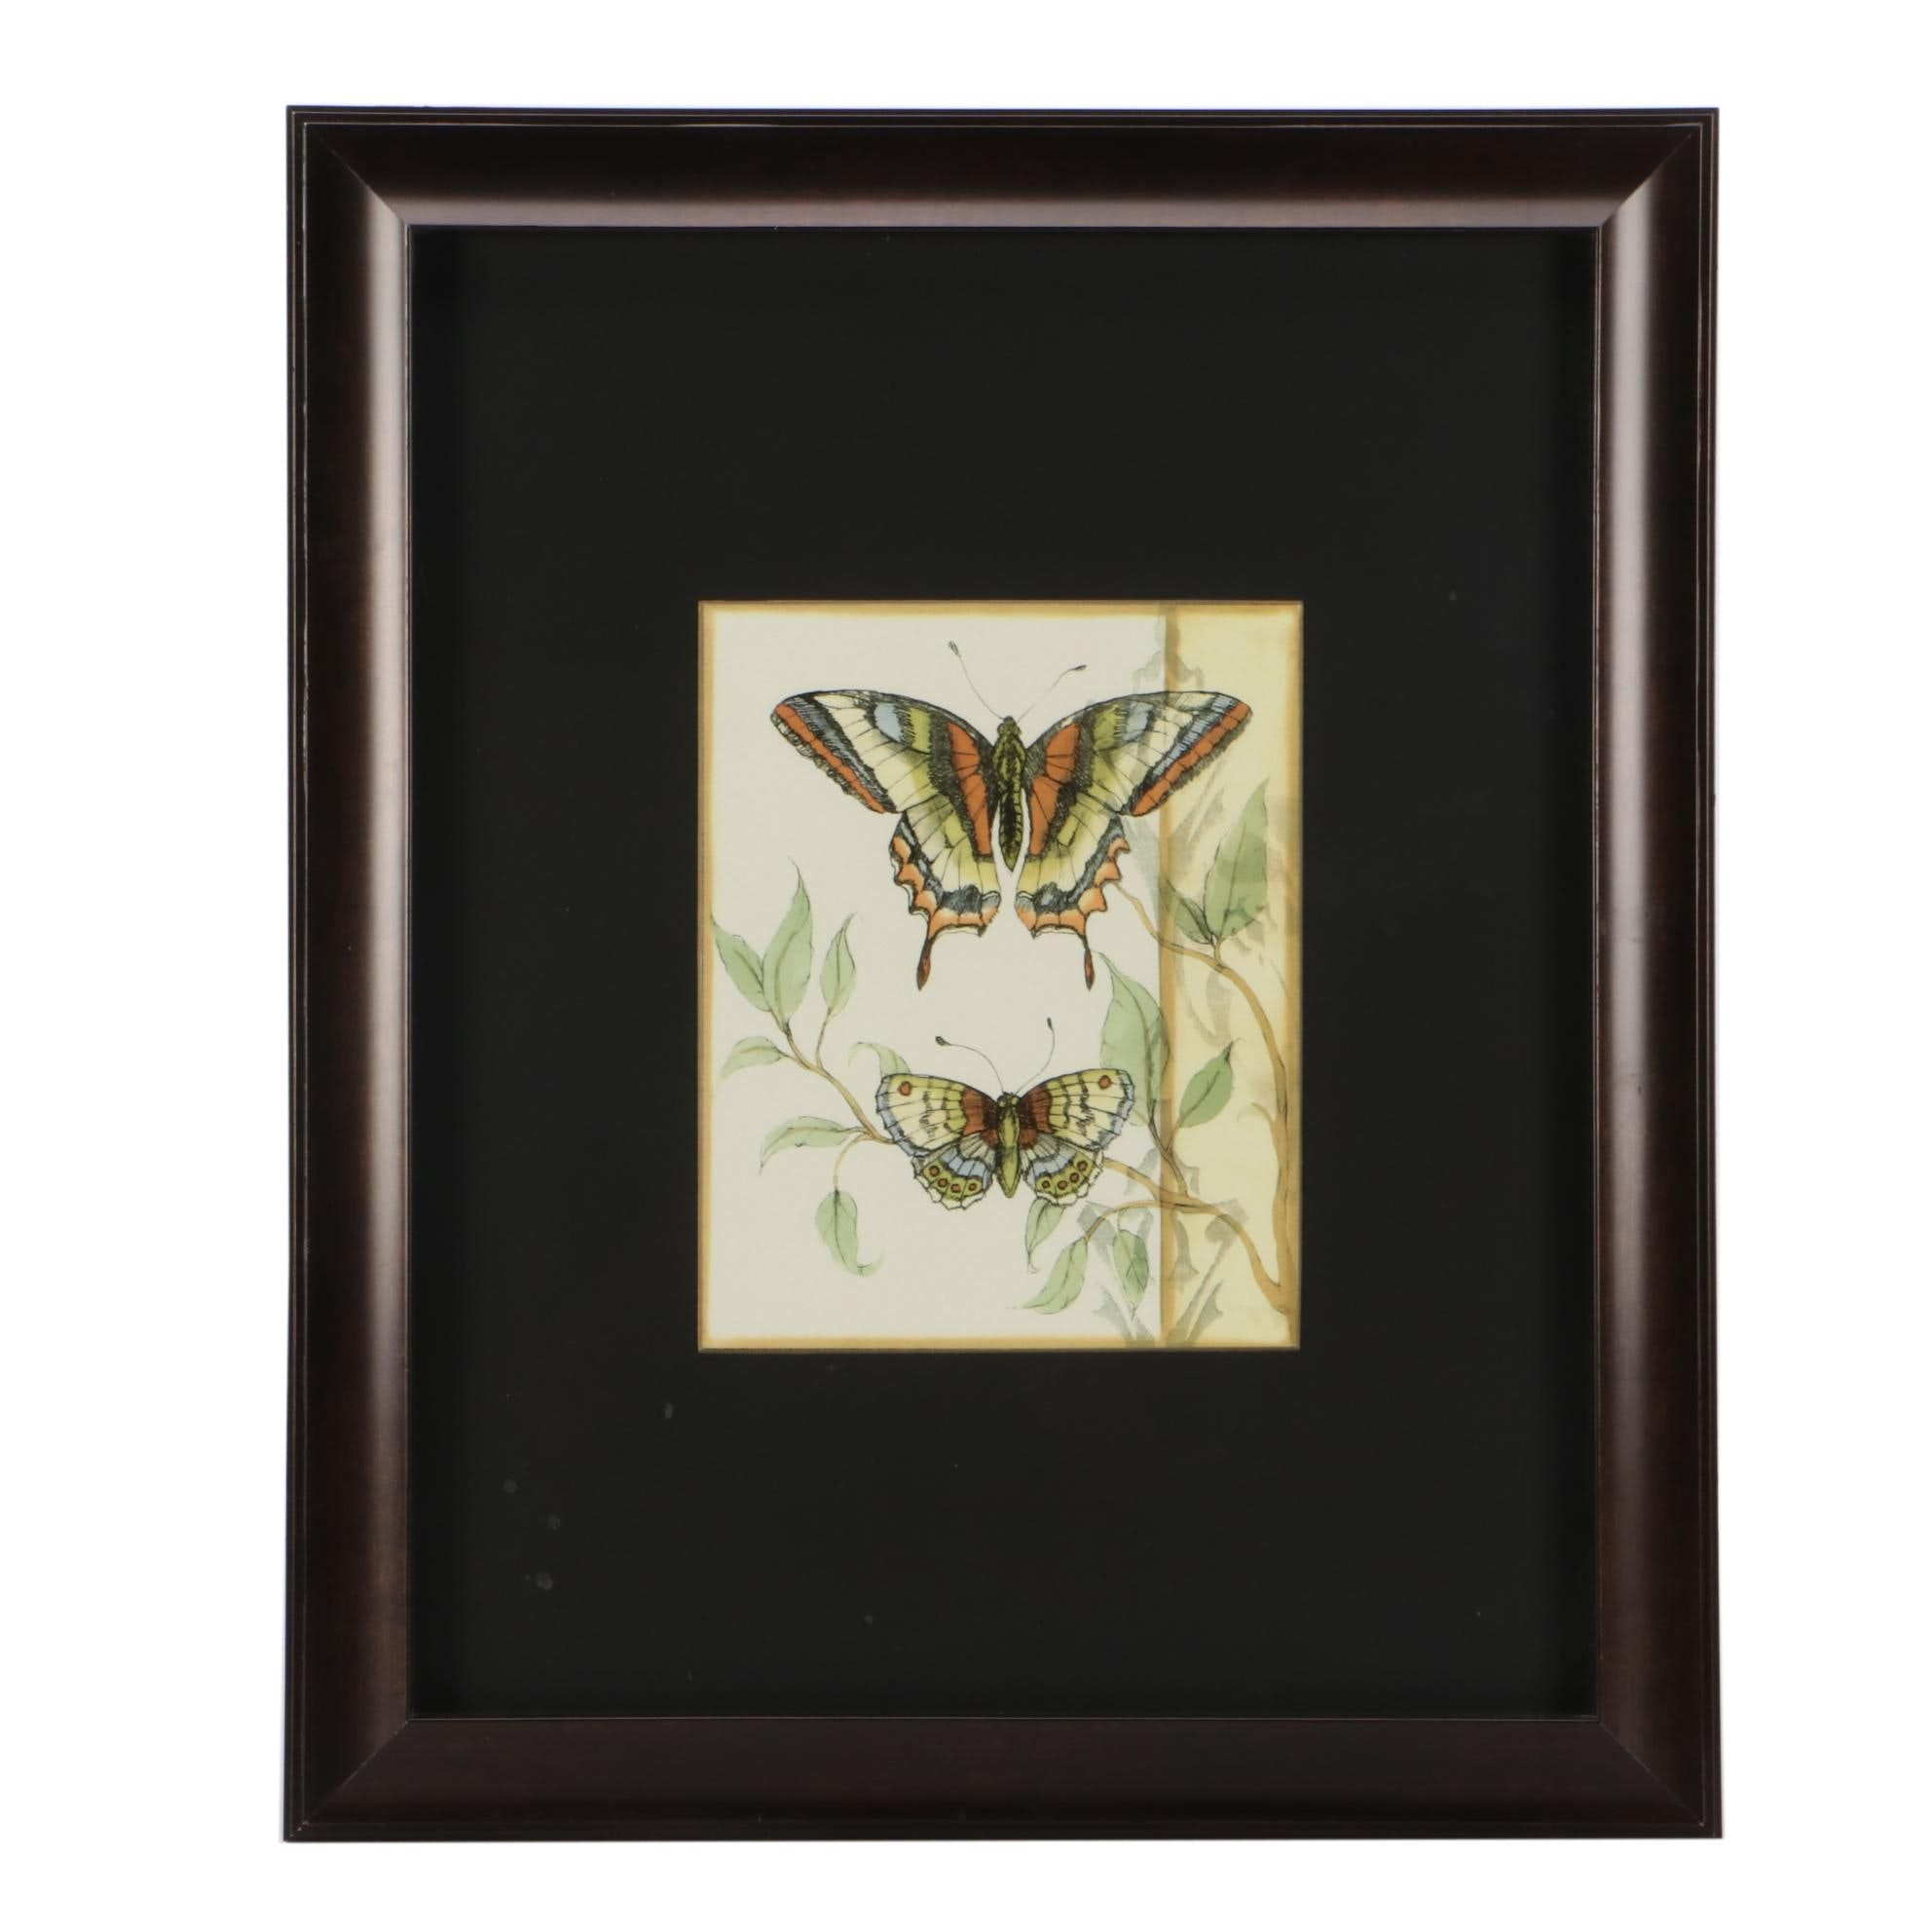 Decorative Butterfly-Themed Offset Lithograph Wall Decor